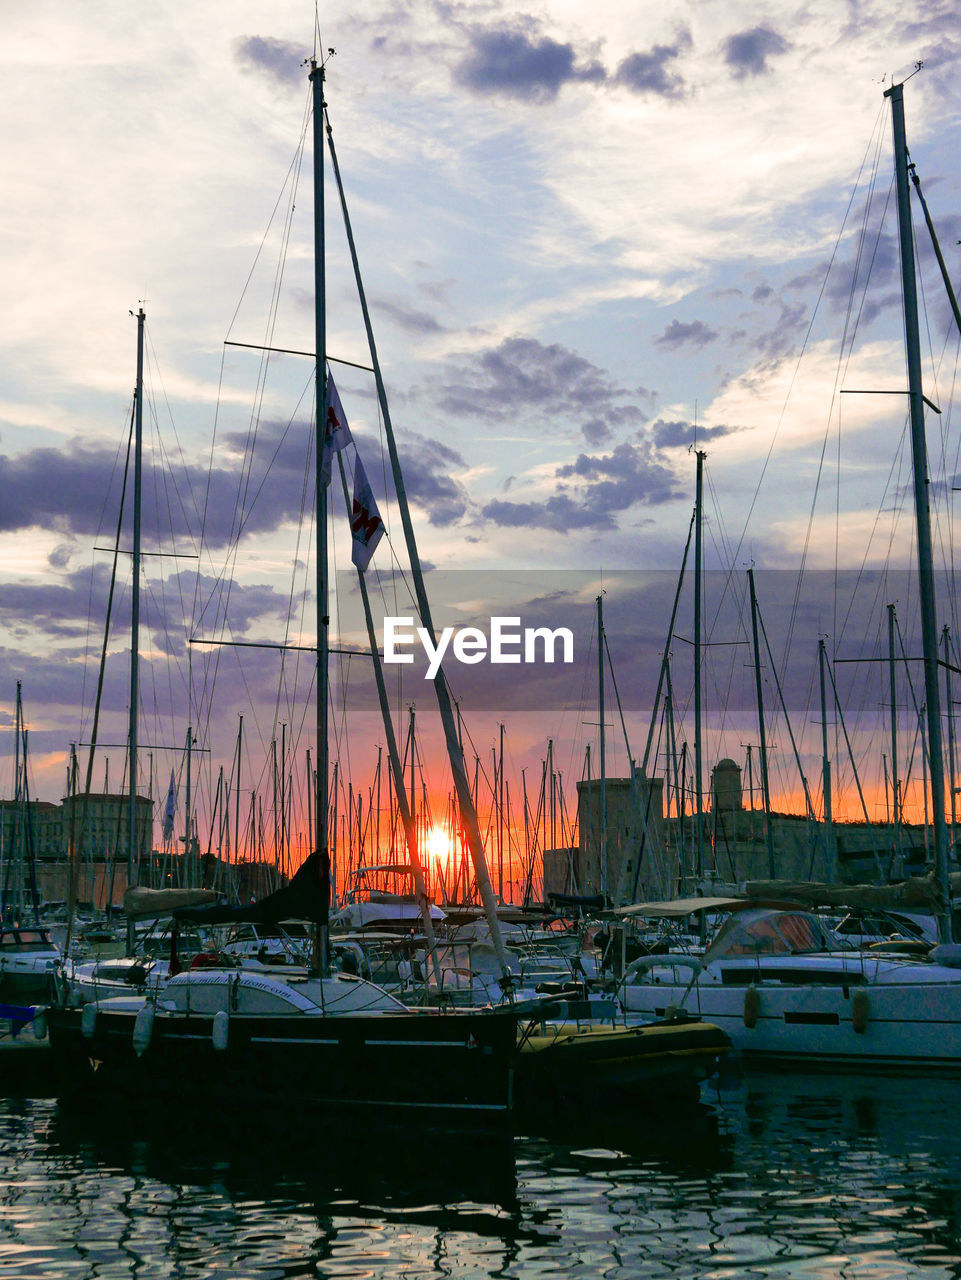 Sailboats moored in harbor against sky during sunset